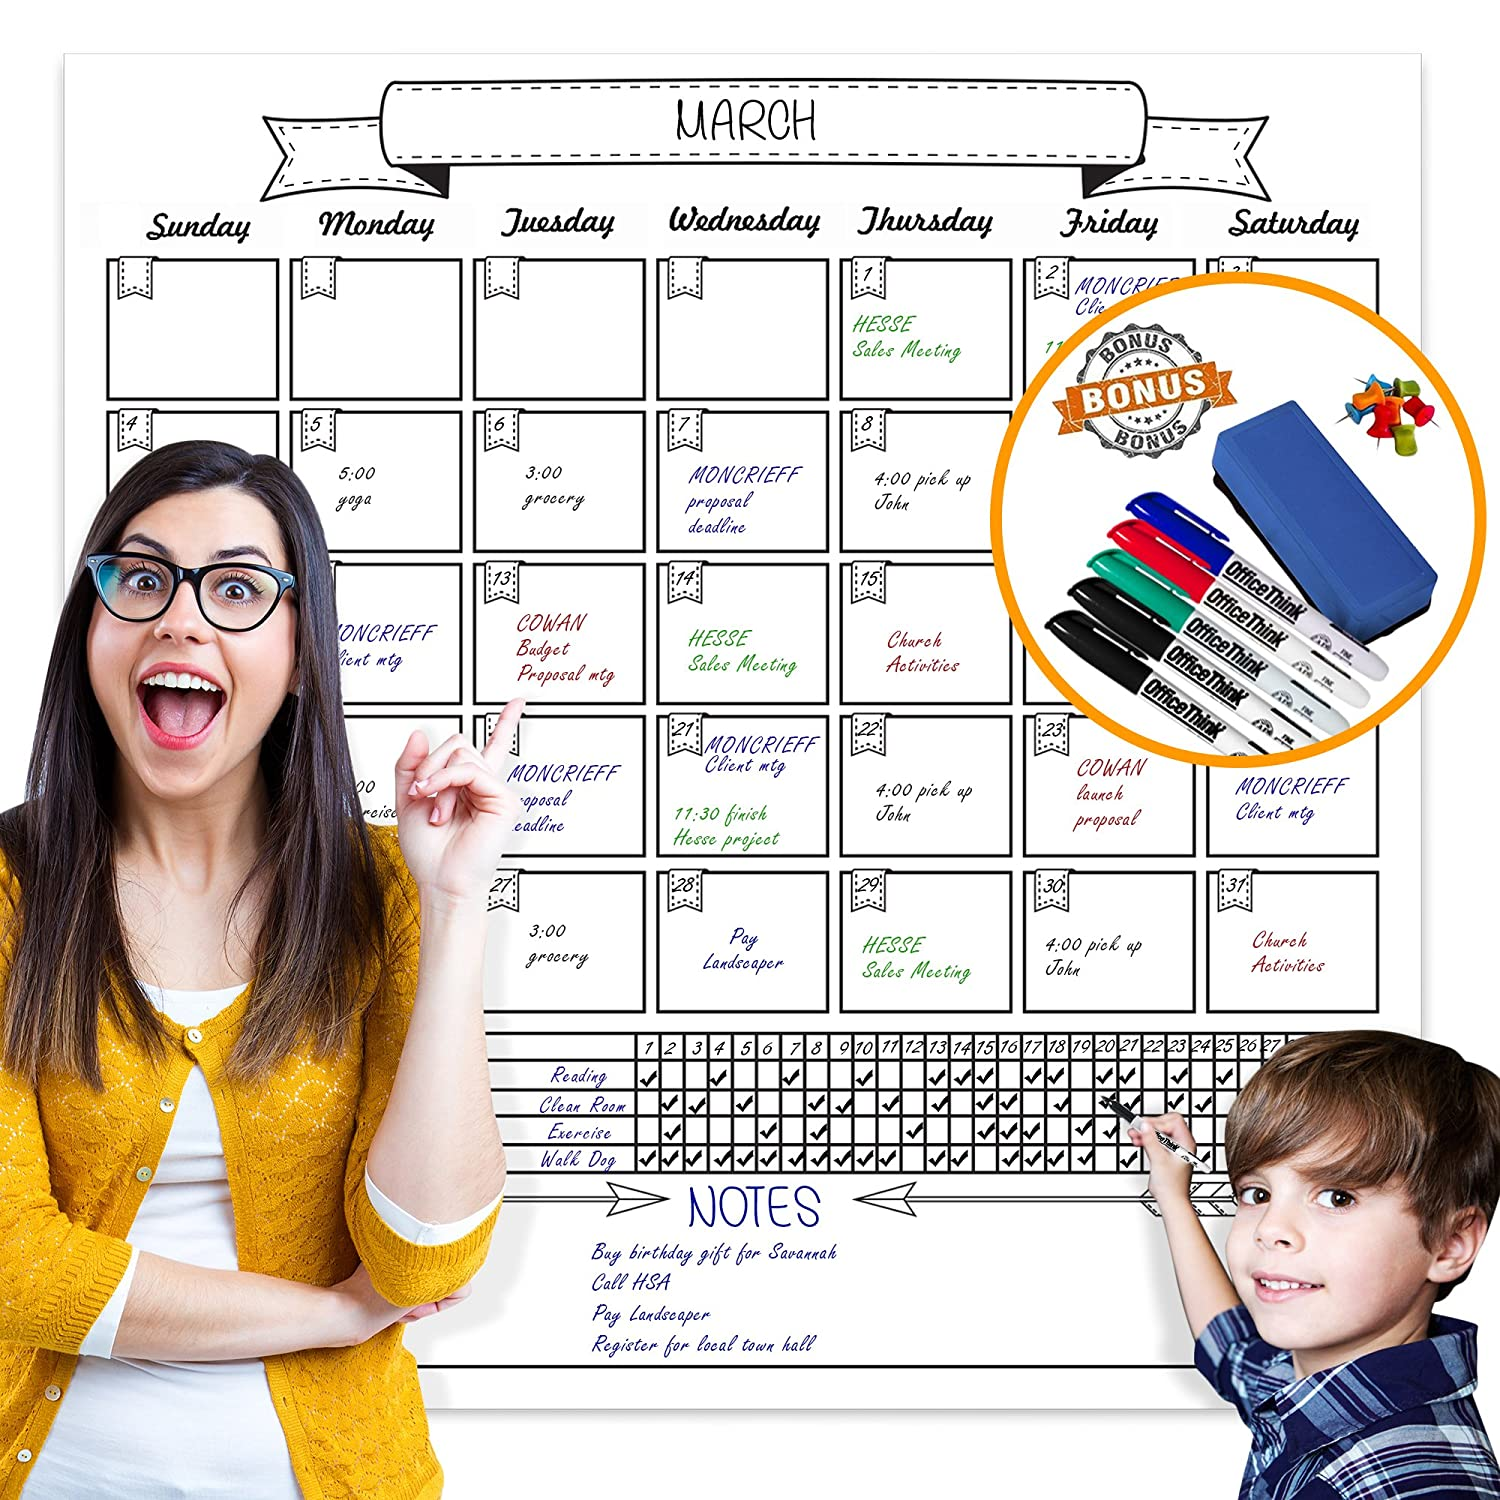 Jumbo Dry Erase Laminated Wall Calendar, Huge 36-Inch by 36-Inch Size, Monthly Planner for Home Office Classroom, Goal Tracker, Reusable PET Film, Never Folded, Bonus 5 Markers, 8 Tacks, 1 Eraser